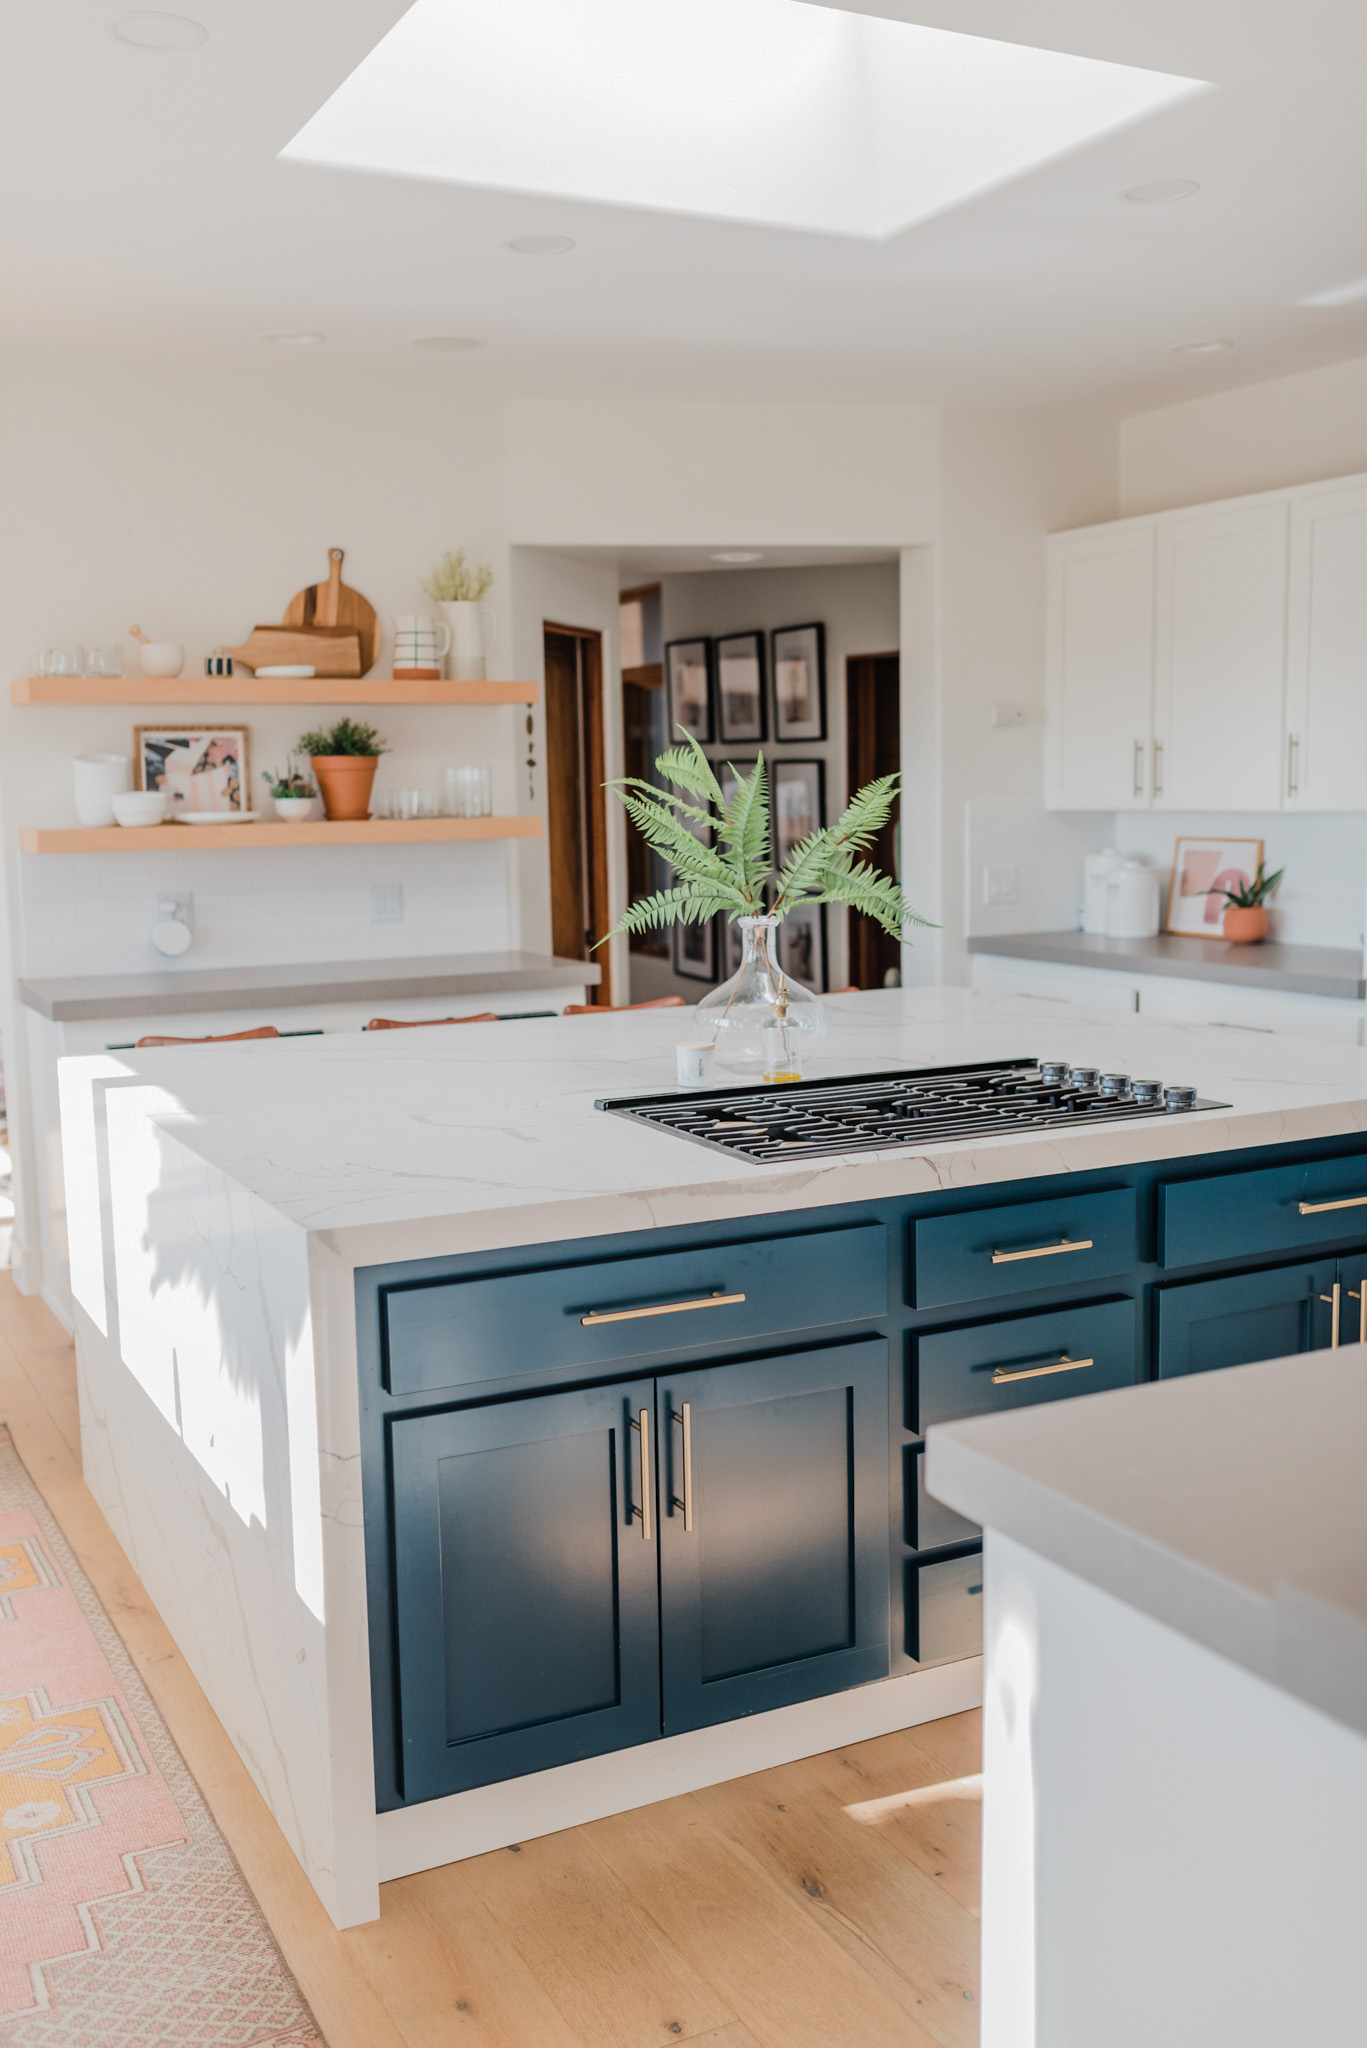 Spring Kitchen Wishlist by popular San Diego life and style blog, Navy Grace: image of a modern kitchen island with marble counter tops, blue drawers and cupboards, and a gas range.